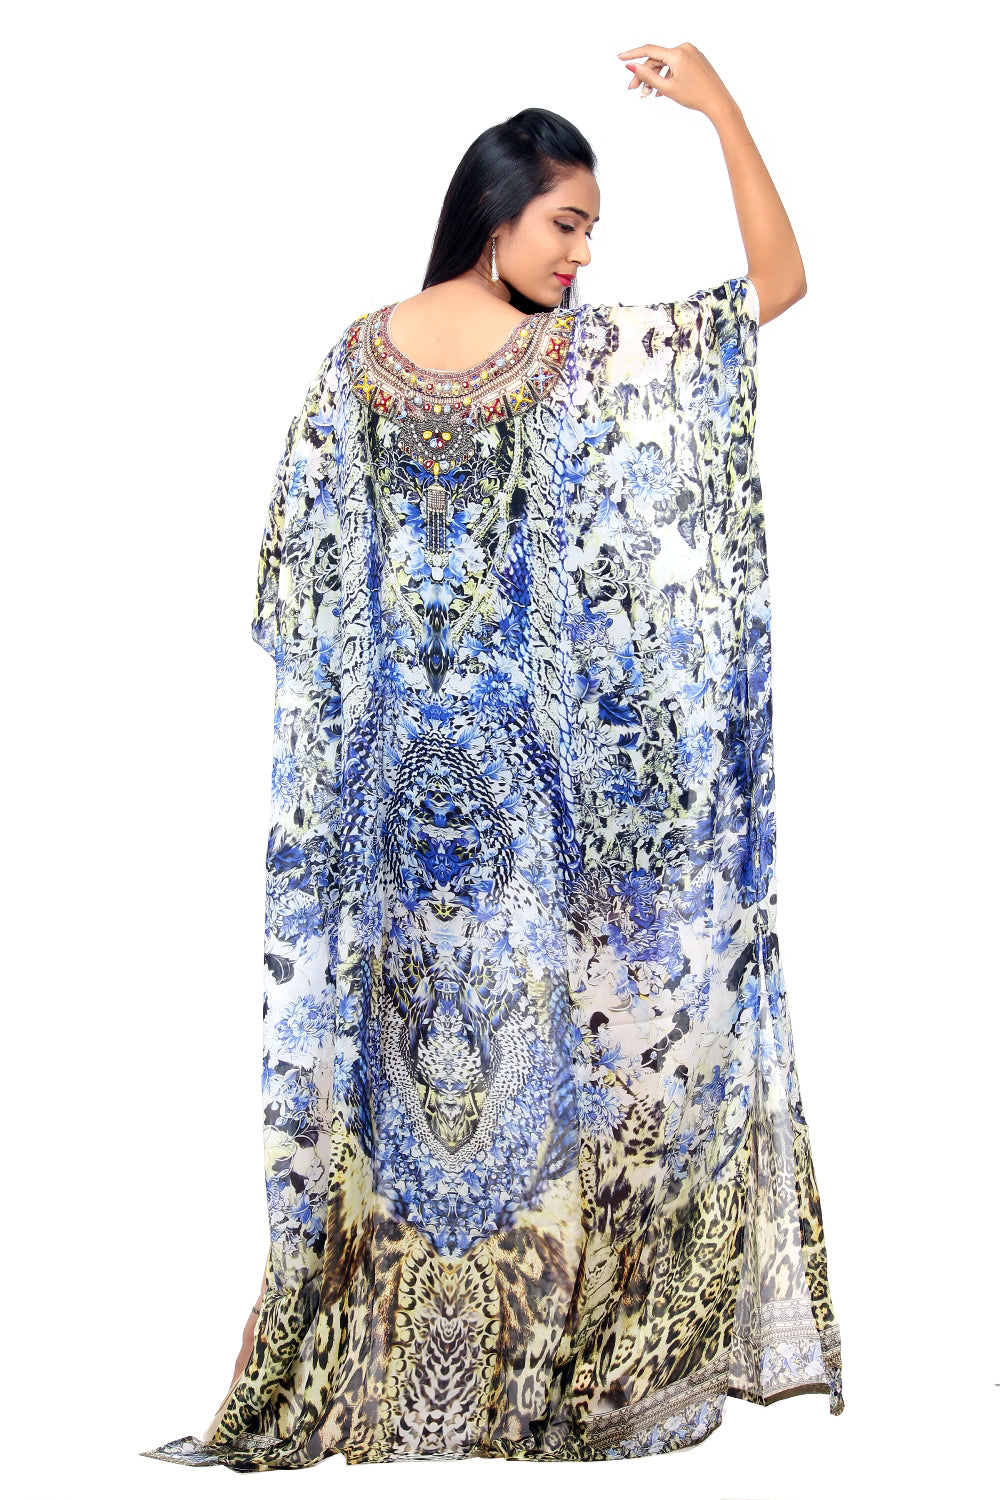 Fusion of Animal and Porcelain print Silk Party Wear Kaftan with flowers and feathers unique designer piece Beach Cover - Silk kaftan